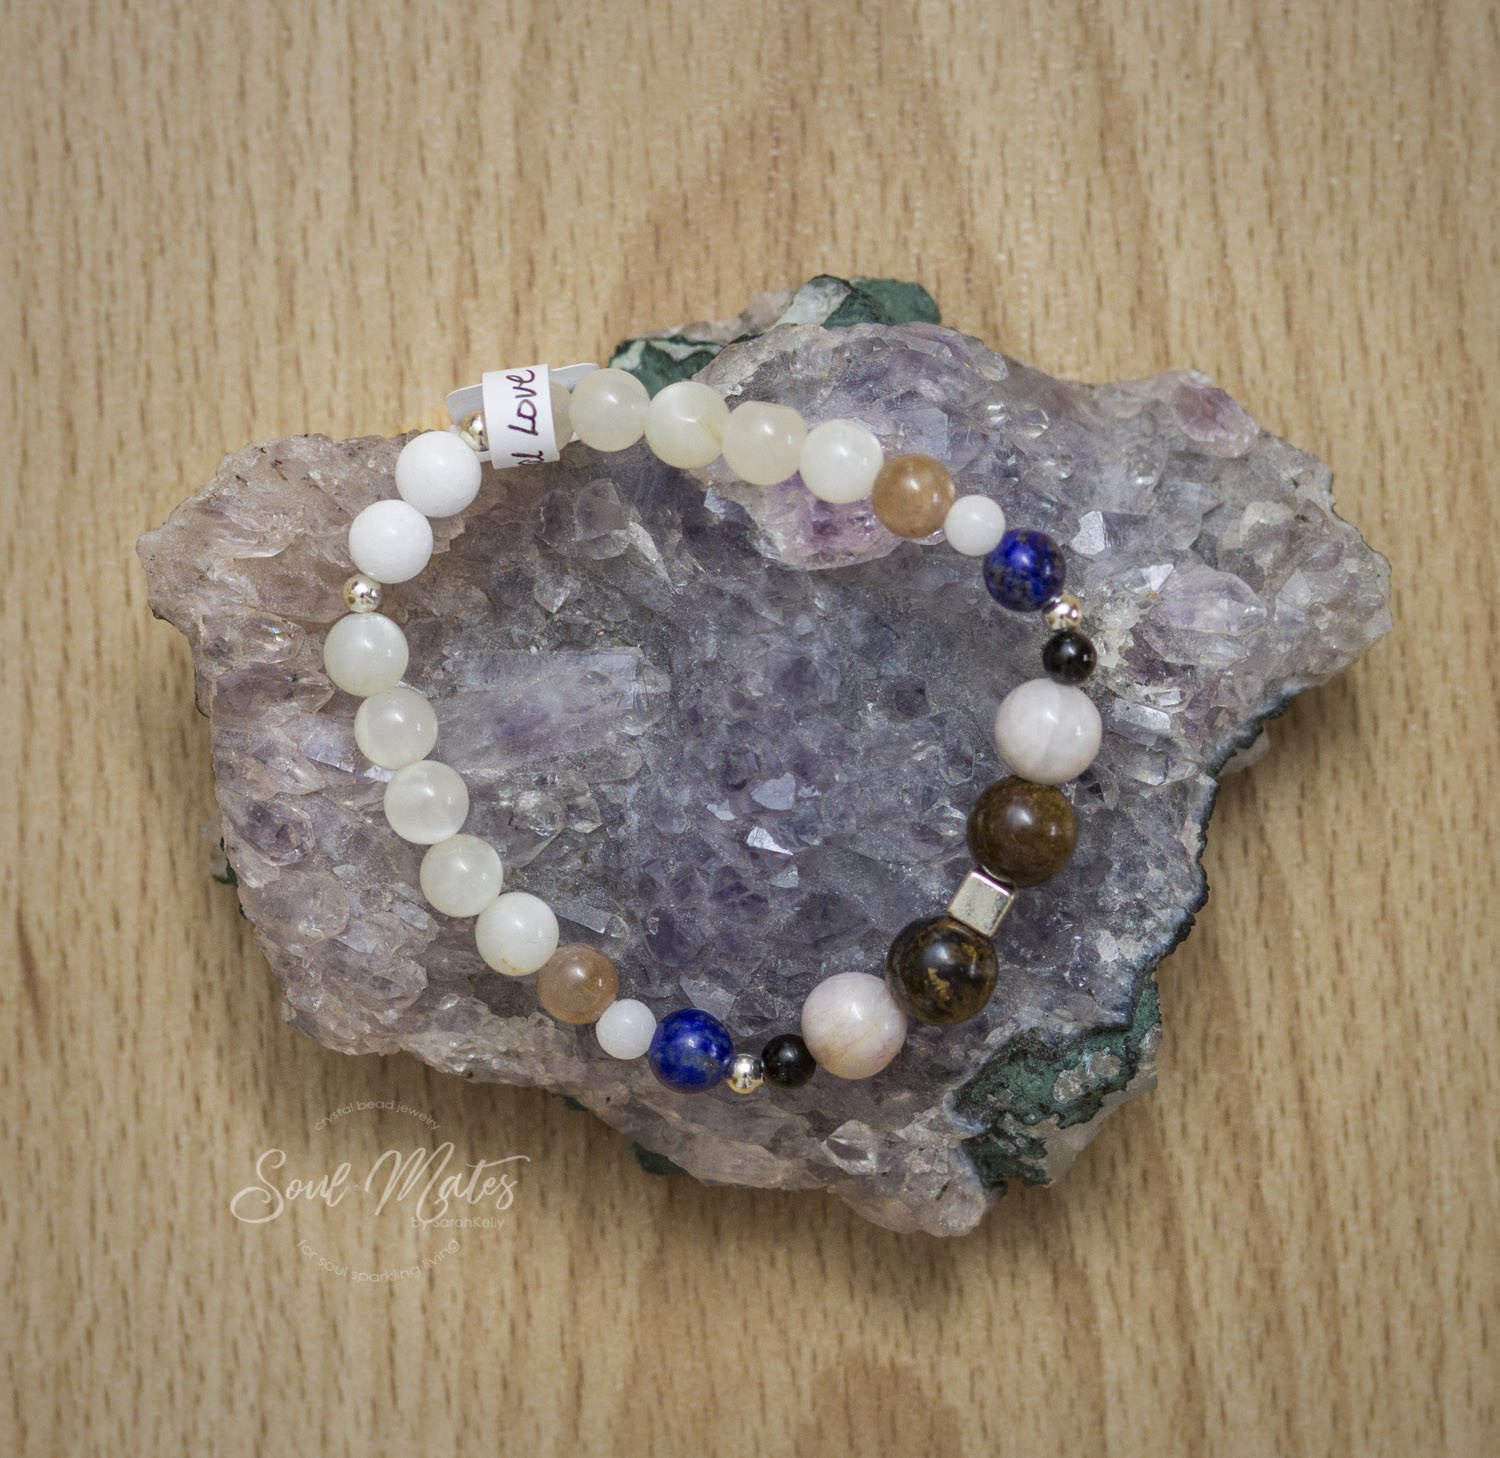 Intuition  - Moonstone and Lapis promote intuition and empathy by calming emotions while Bronzite and Kunzite protect from negativity and emotional attack from others. Powerful protector to allow for intuitive sense to flow.  $25